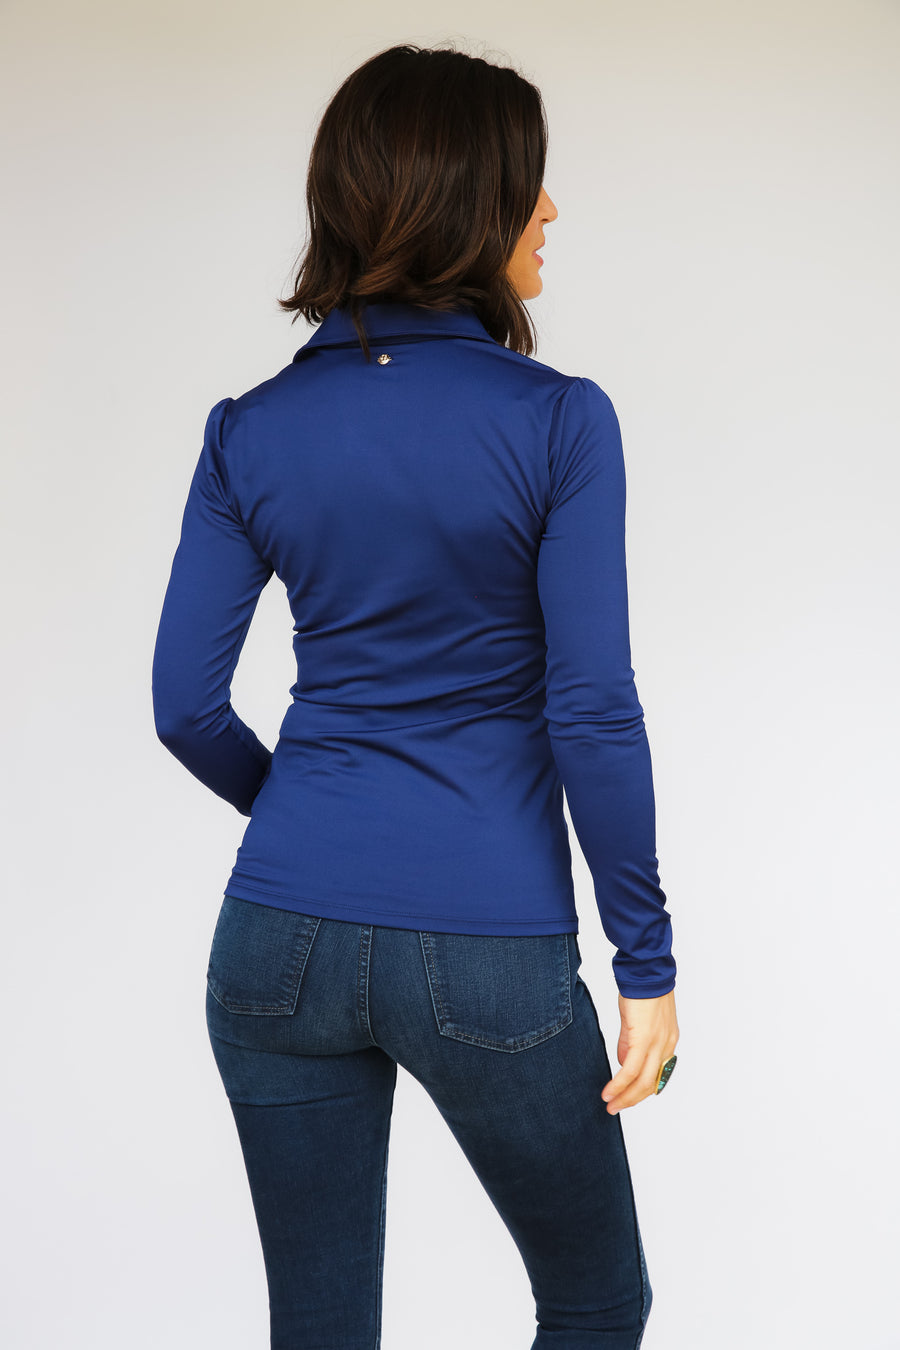 Long Sleeve Women's Performance Shirt